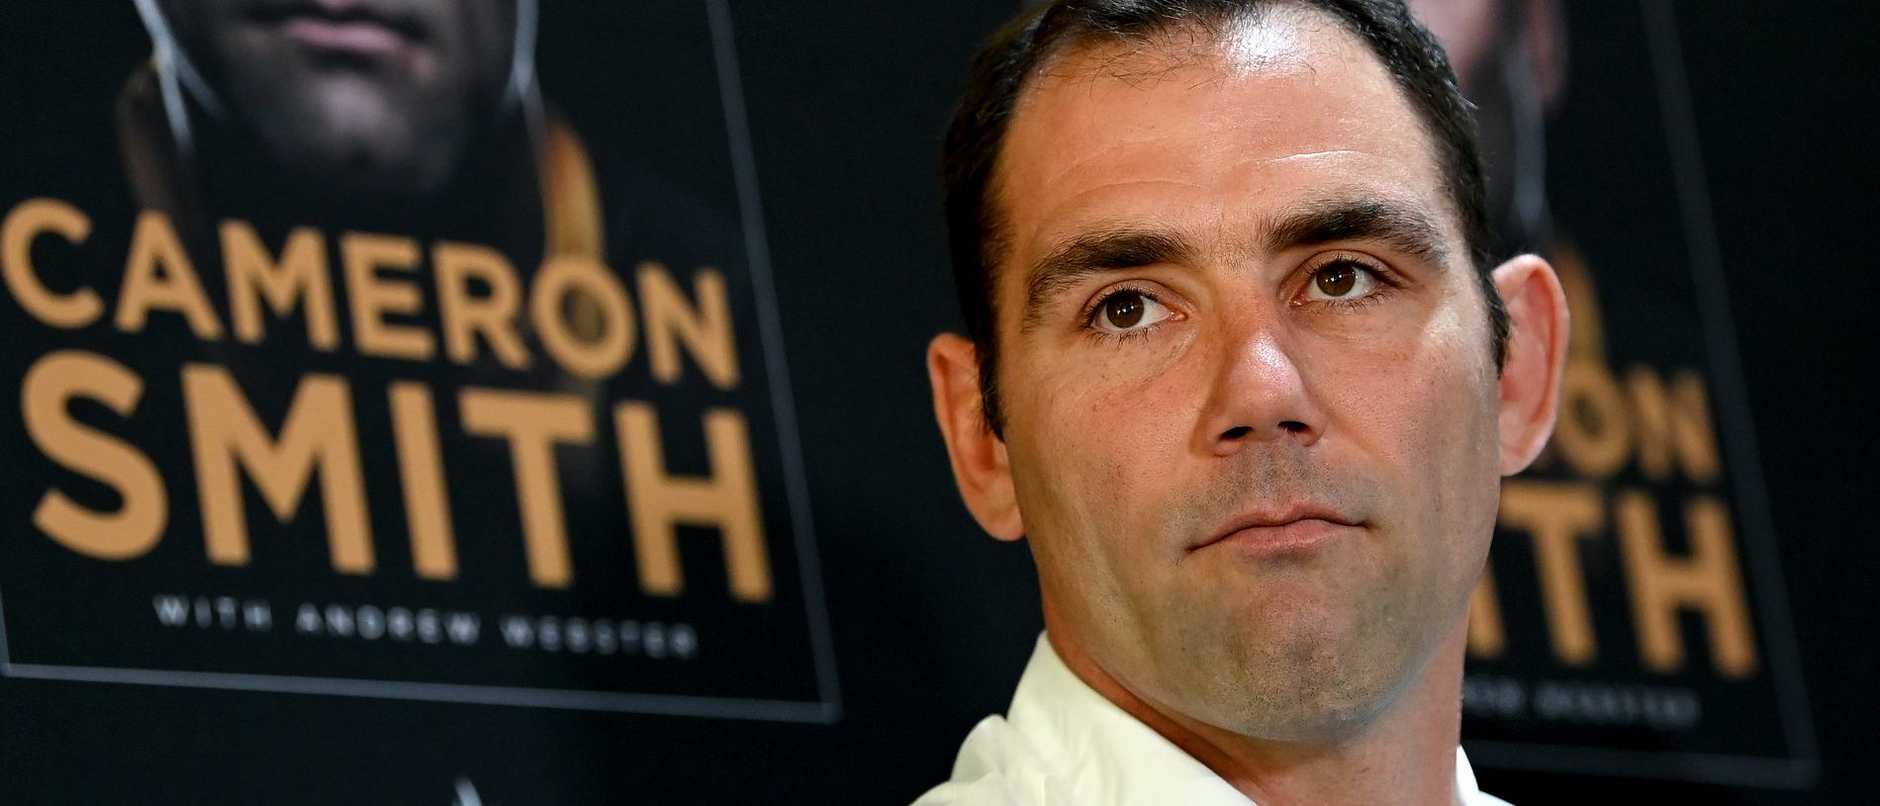 Cameron Smith Releases Autobiography 'The Storm Within'